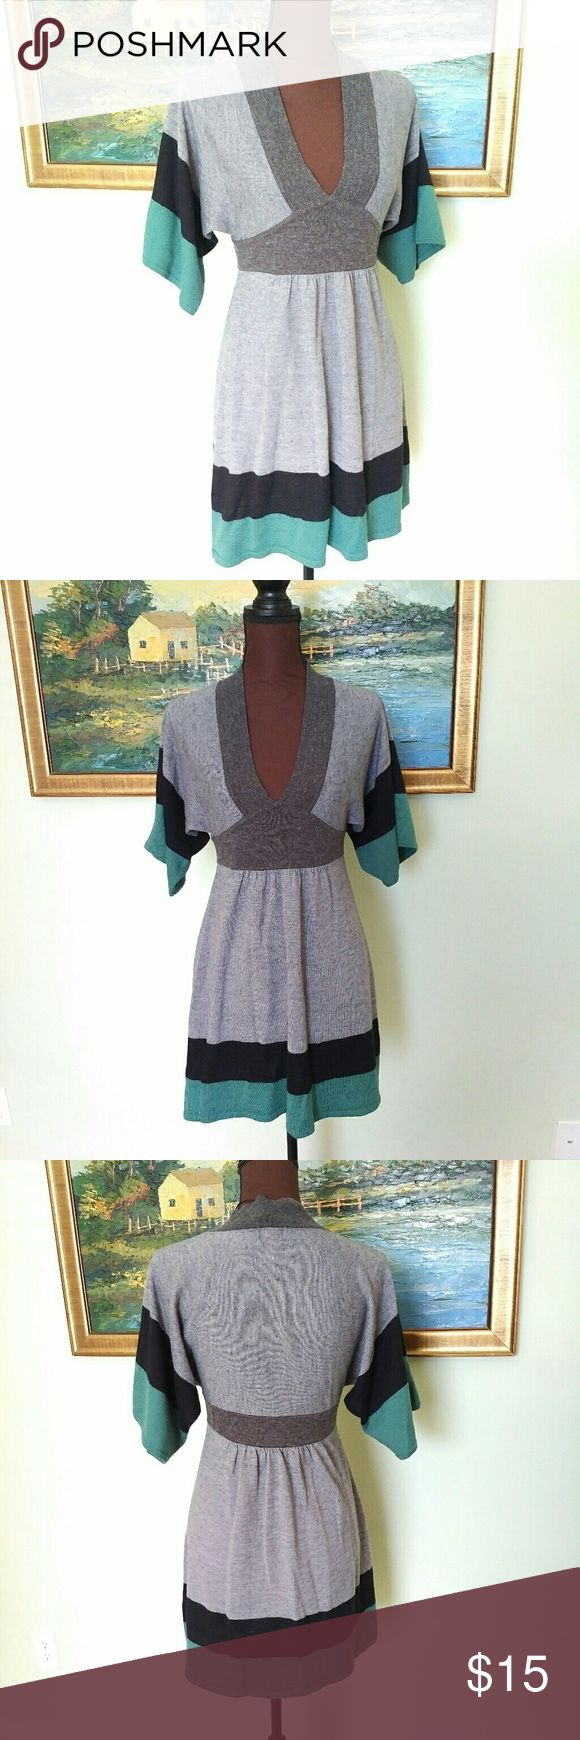 H&M Tunic Fit and Flare Sweater Dress Size M H&M Tunic Sweater Dress in size medium. Thanks for stopping by. Happy to answer any questions for you. H&M Dresses